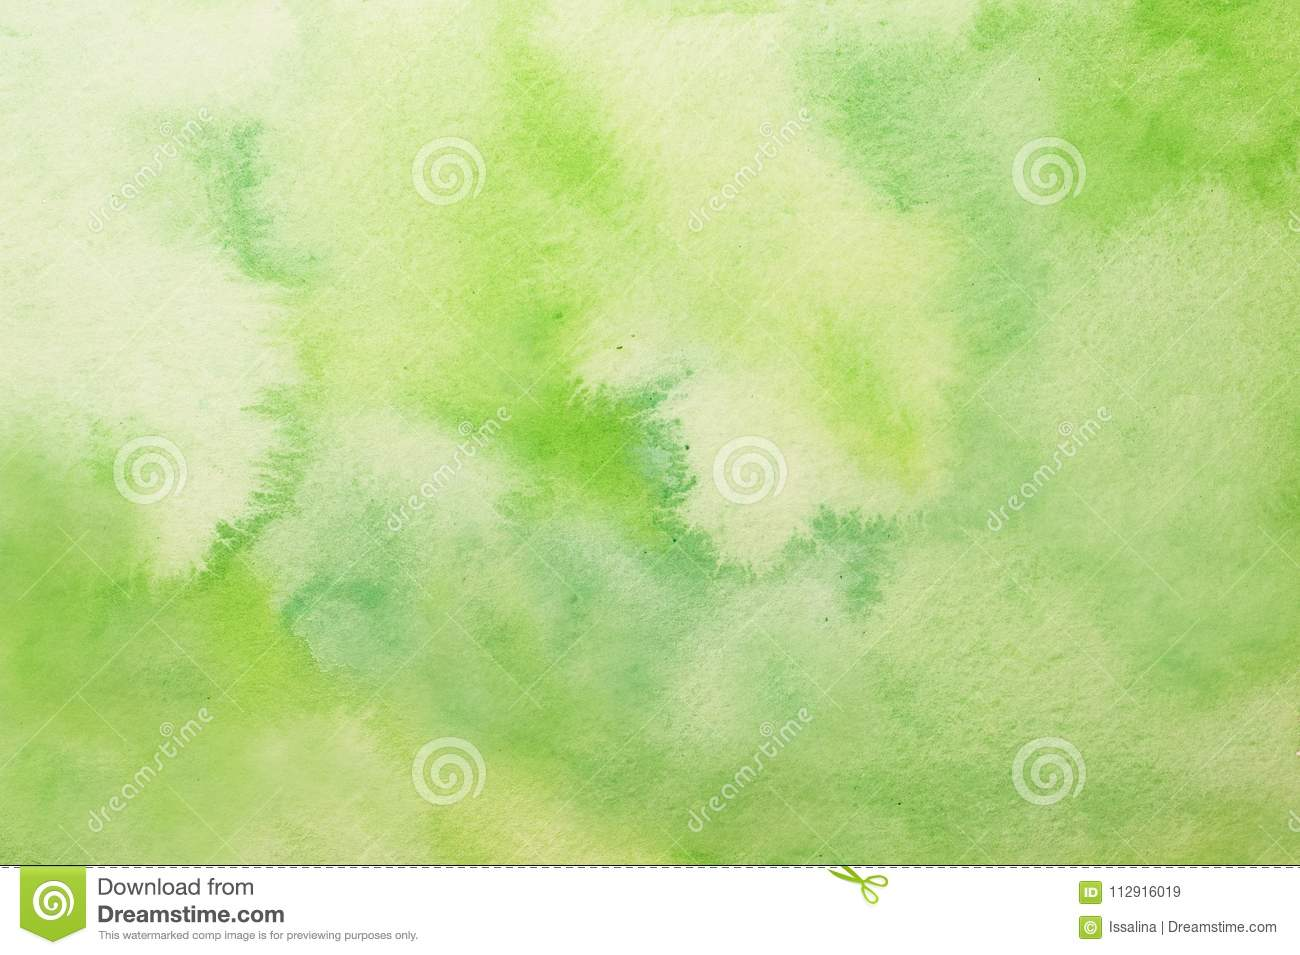 Art abstract watercolor background